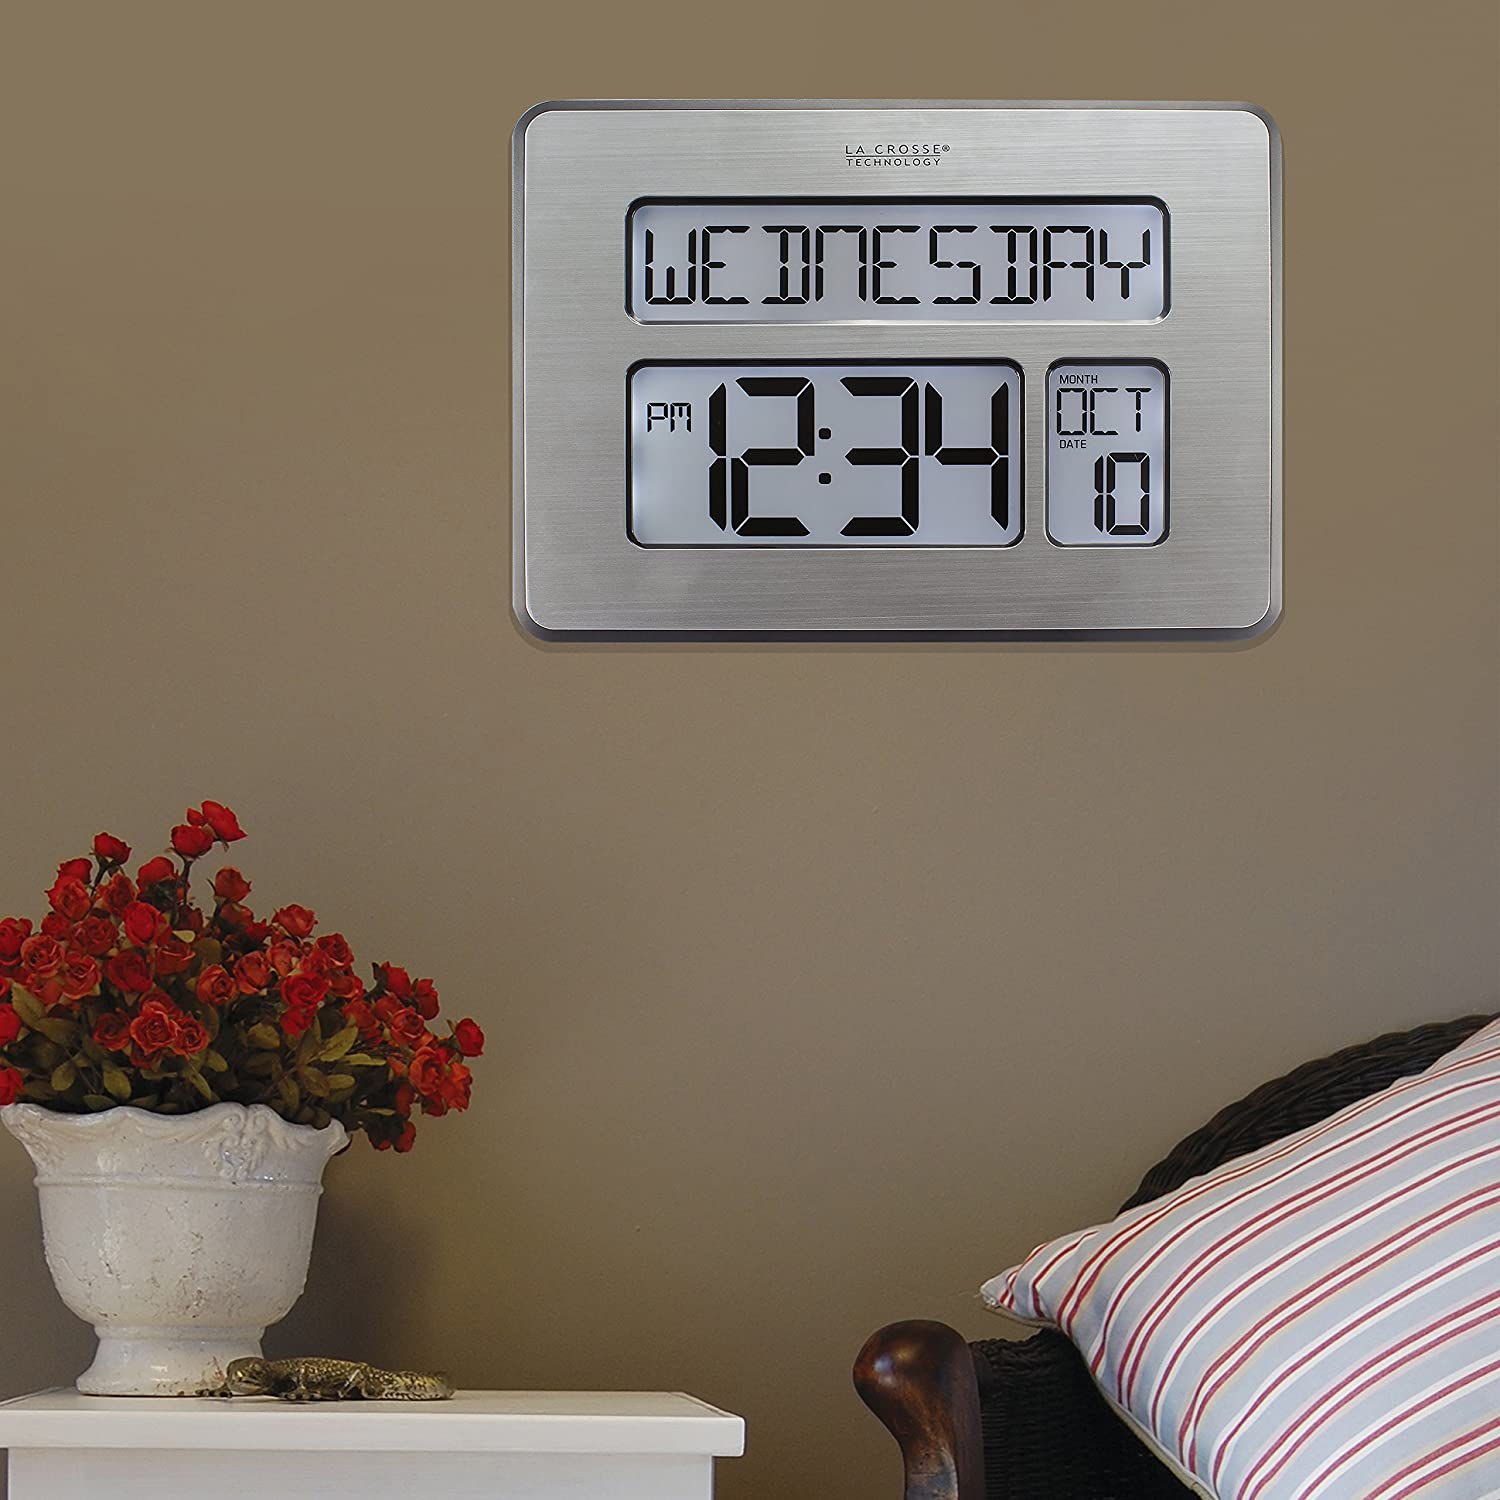 Amazon la crosse technology c86279 atomic full calendar clock amazon la crosse technology c86279 atomic full calendar clock with extra large digits perfect gift for the elderly home kitchen amipublicfo Image collections